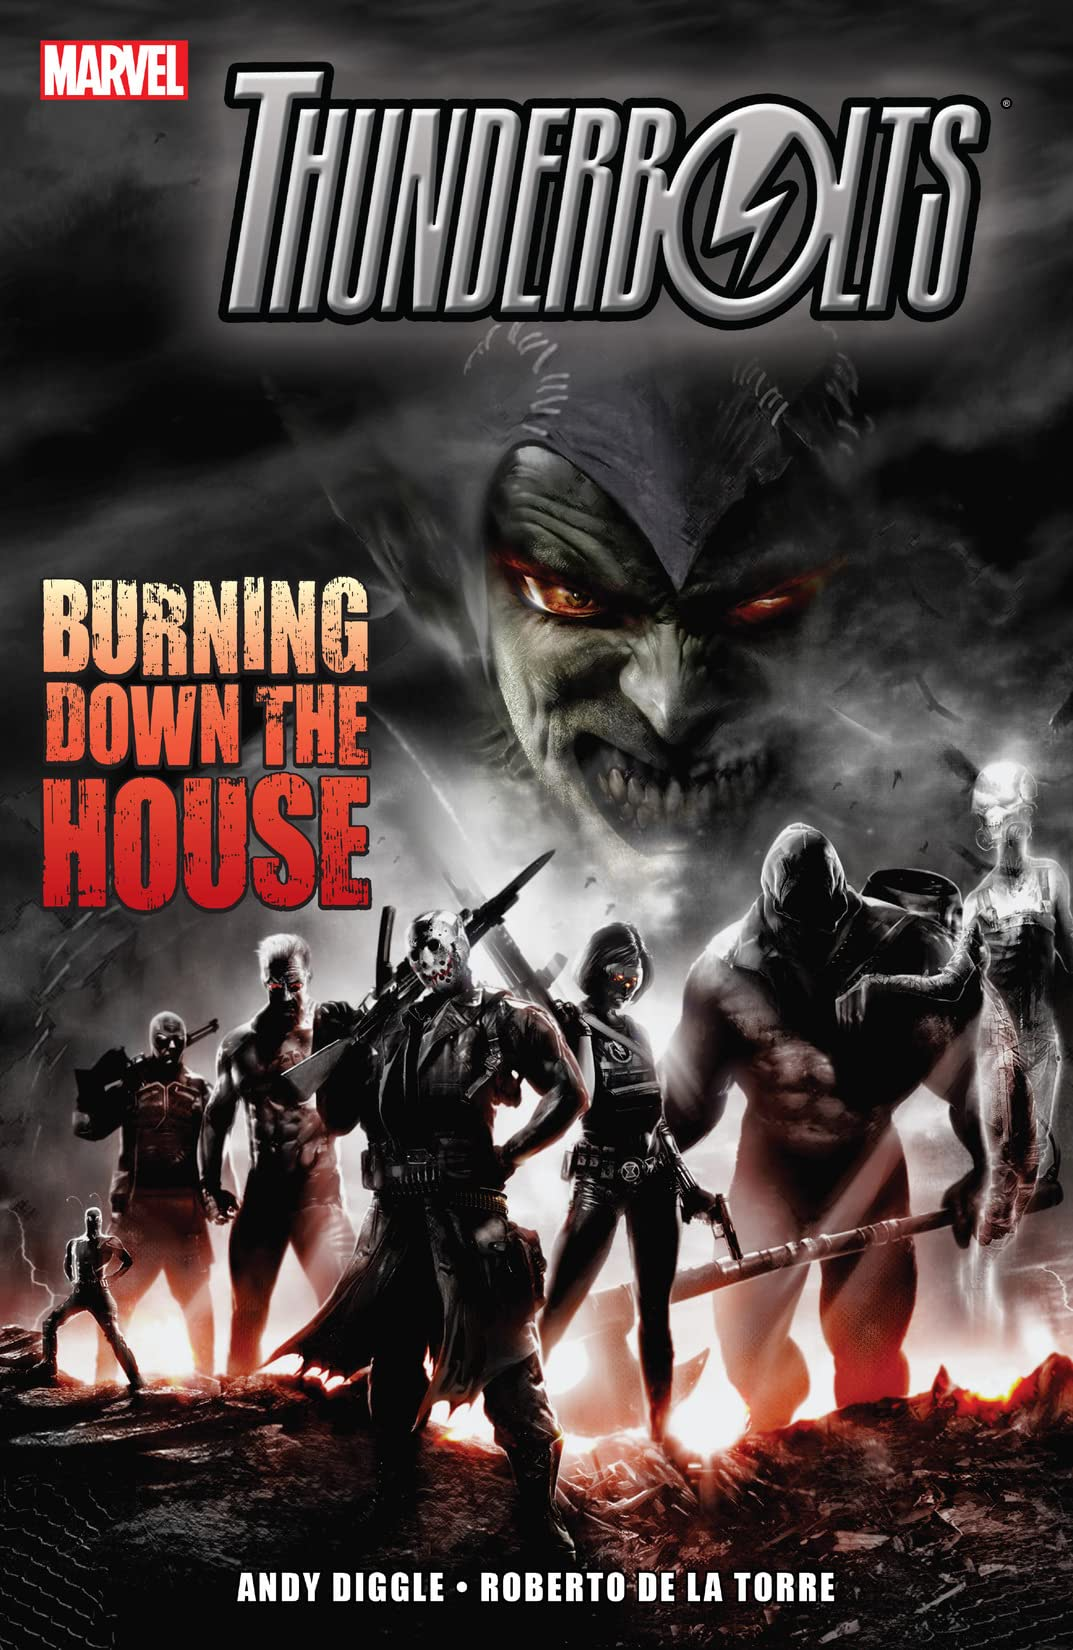 Thunderbolts: Burning Down The House